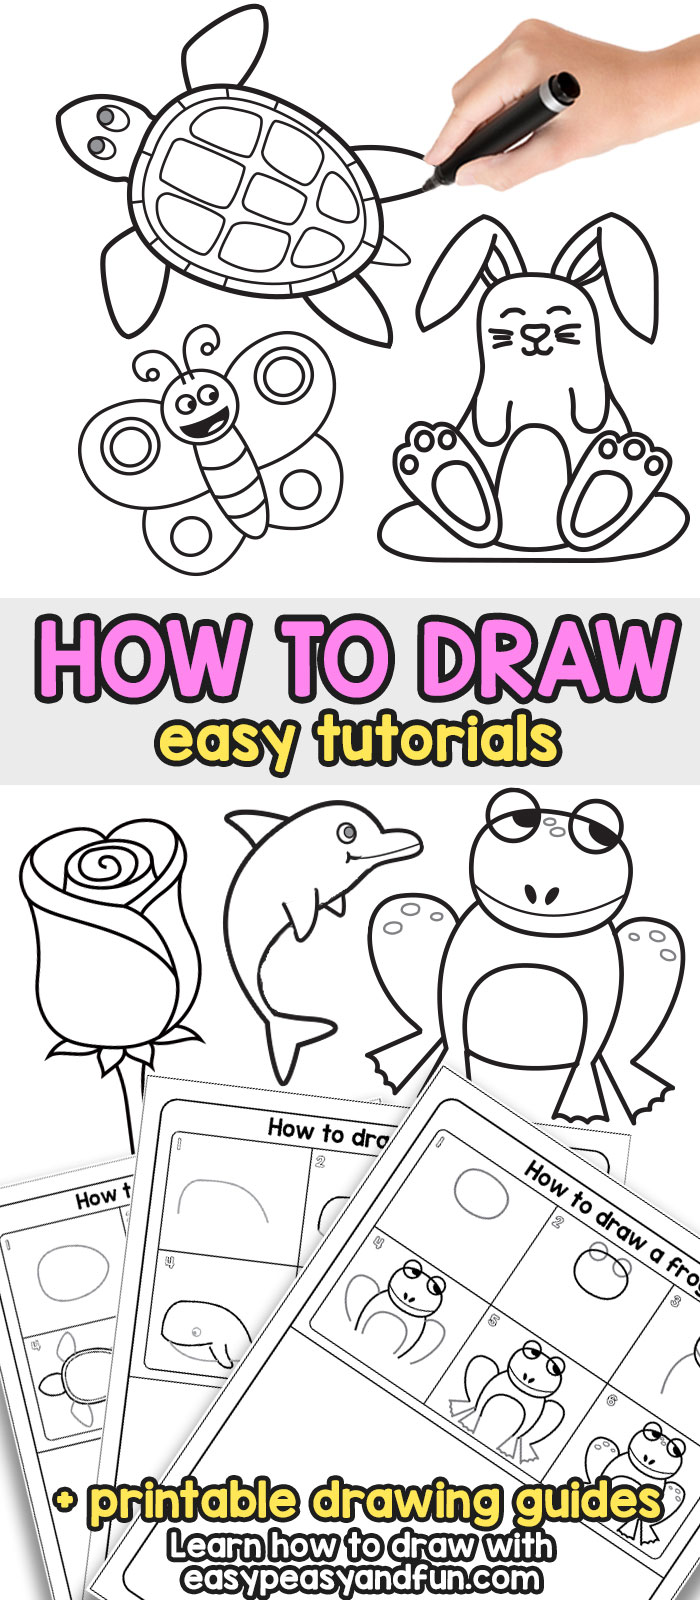 How to draw step by step drawing for kids and beginners howtodraw